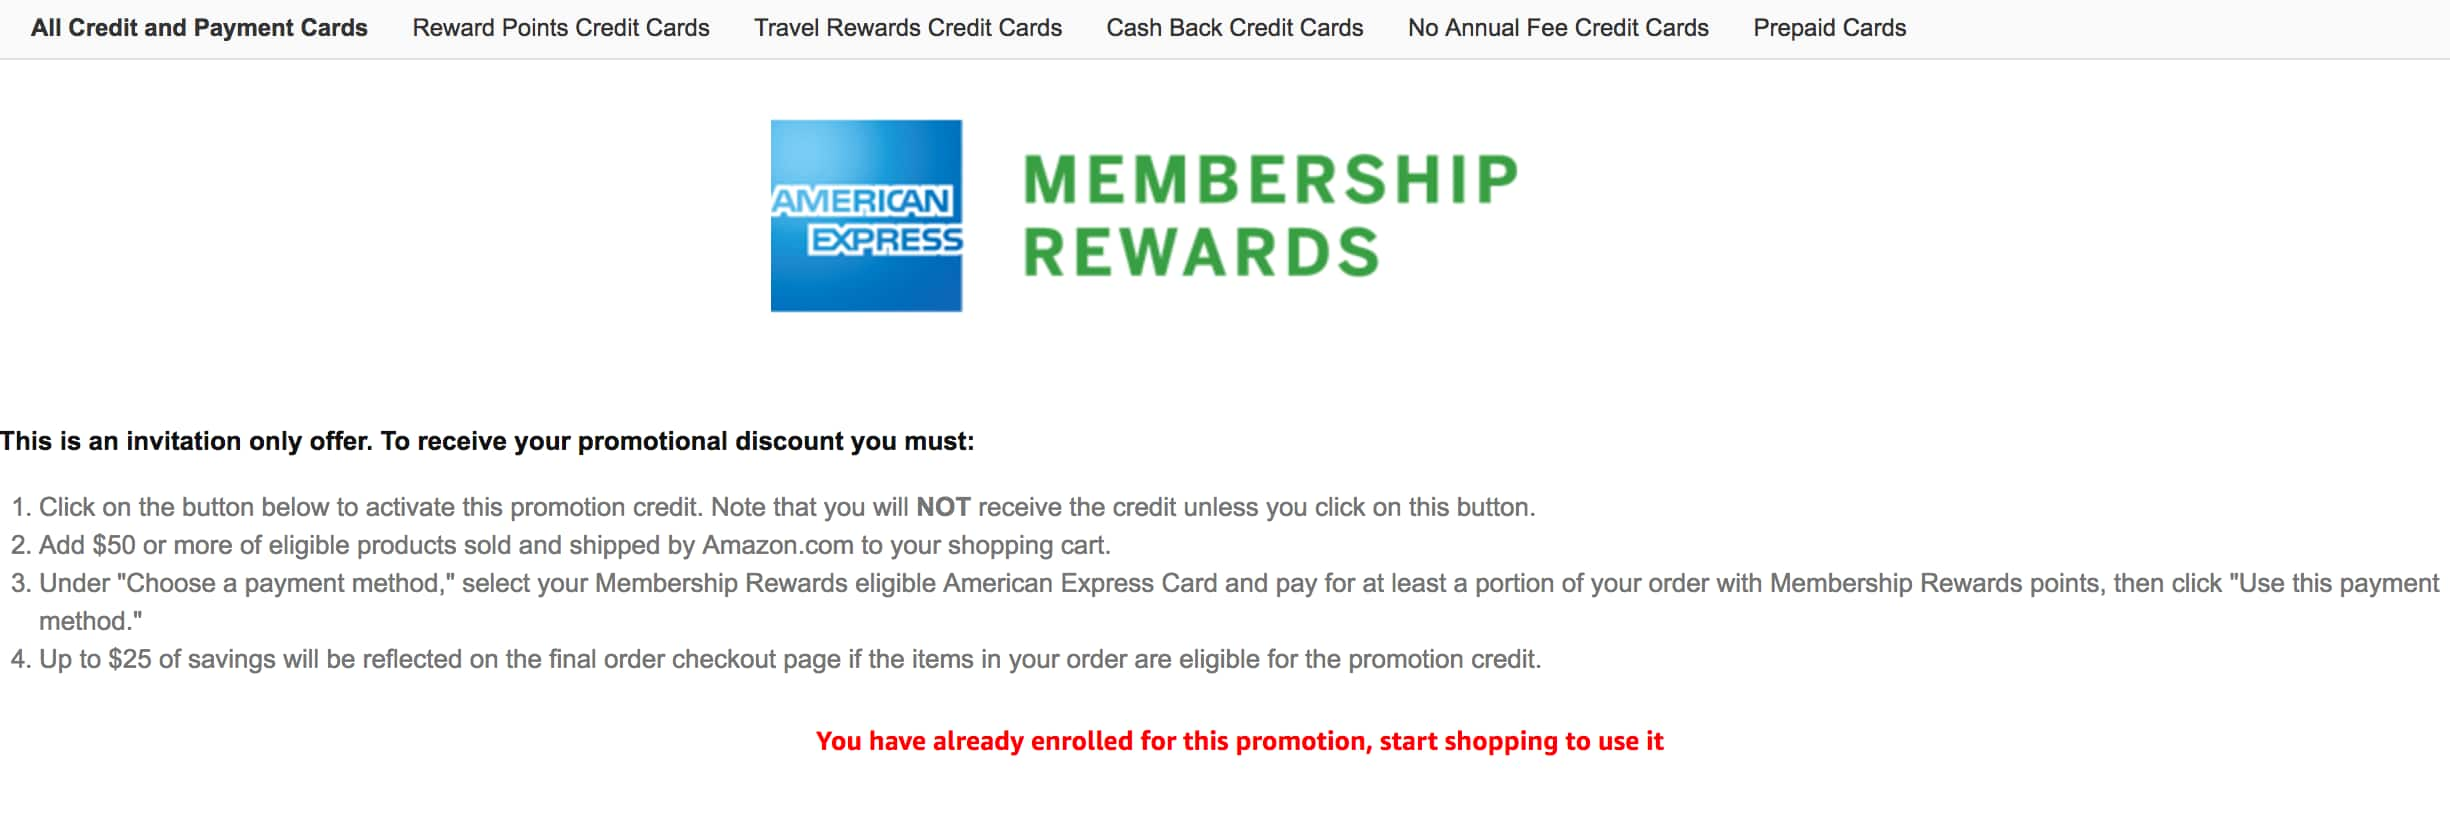 YMMV Amazon: Amex Membership Rewards Cardholders: Pay w/ Points $25OFF (BACK AGAIN)